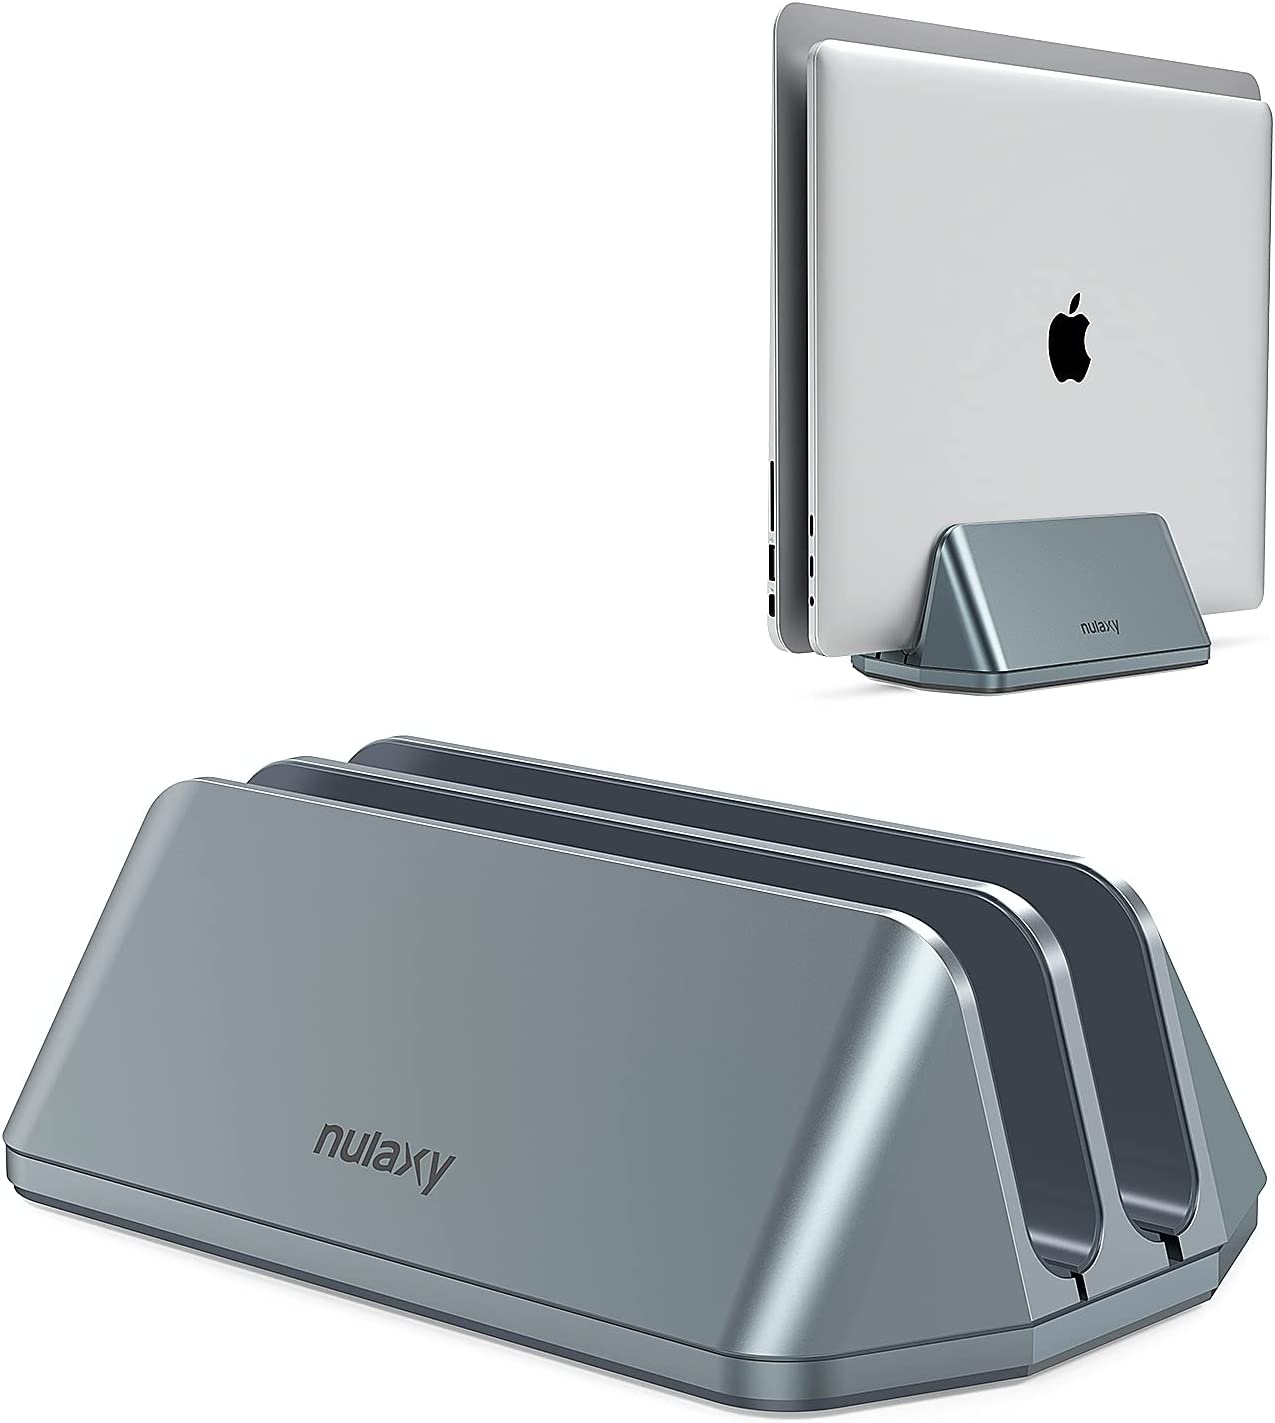 Nulaxy Vertical Laptop Stand, Space Saving Desktop MacBook Vertical Stand with Double Adjustable Docks, Aluminum Laptop Holder Fits All MacBook/iPad/Laptop up to 17.3 inches, Grey